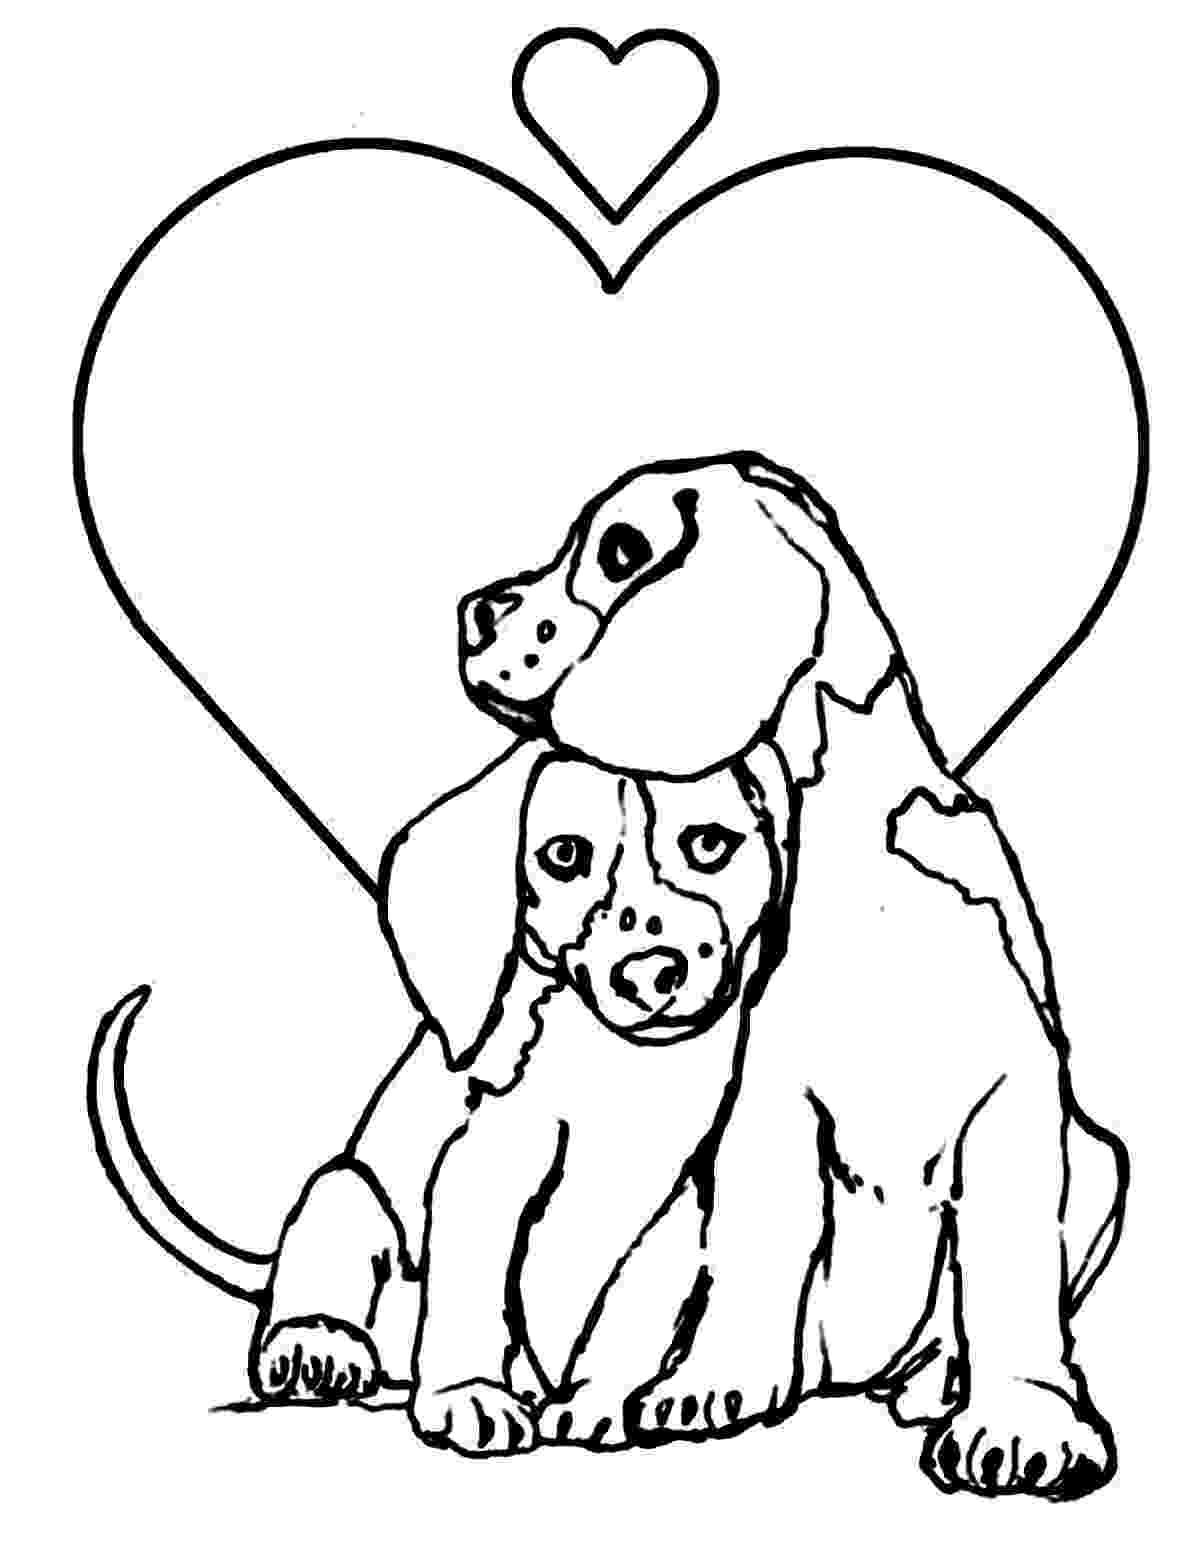 free online dog coloring pages dog for children loving dogs dogs kids coloring pages online pages dog free coloring